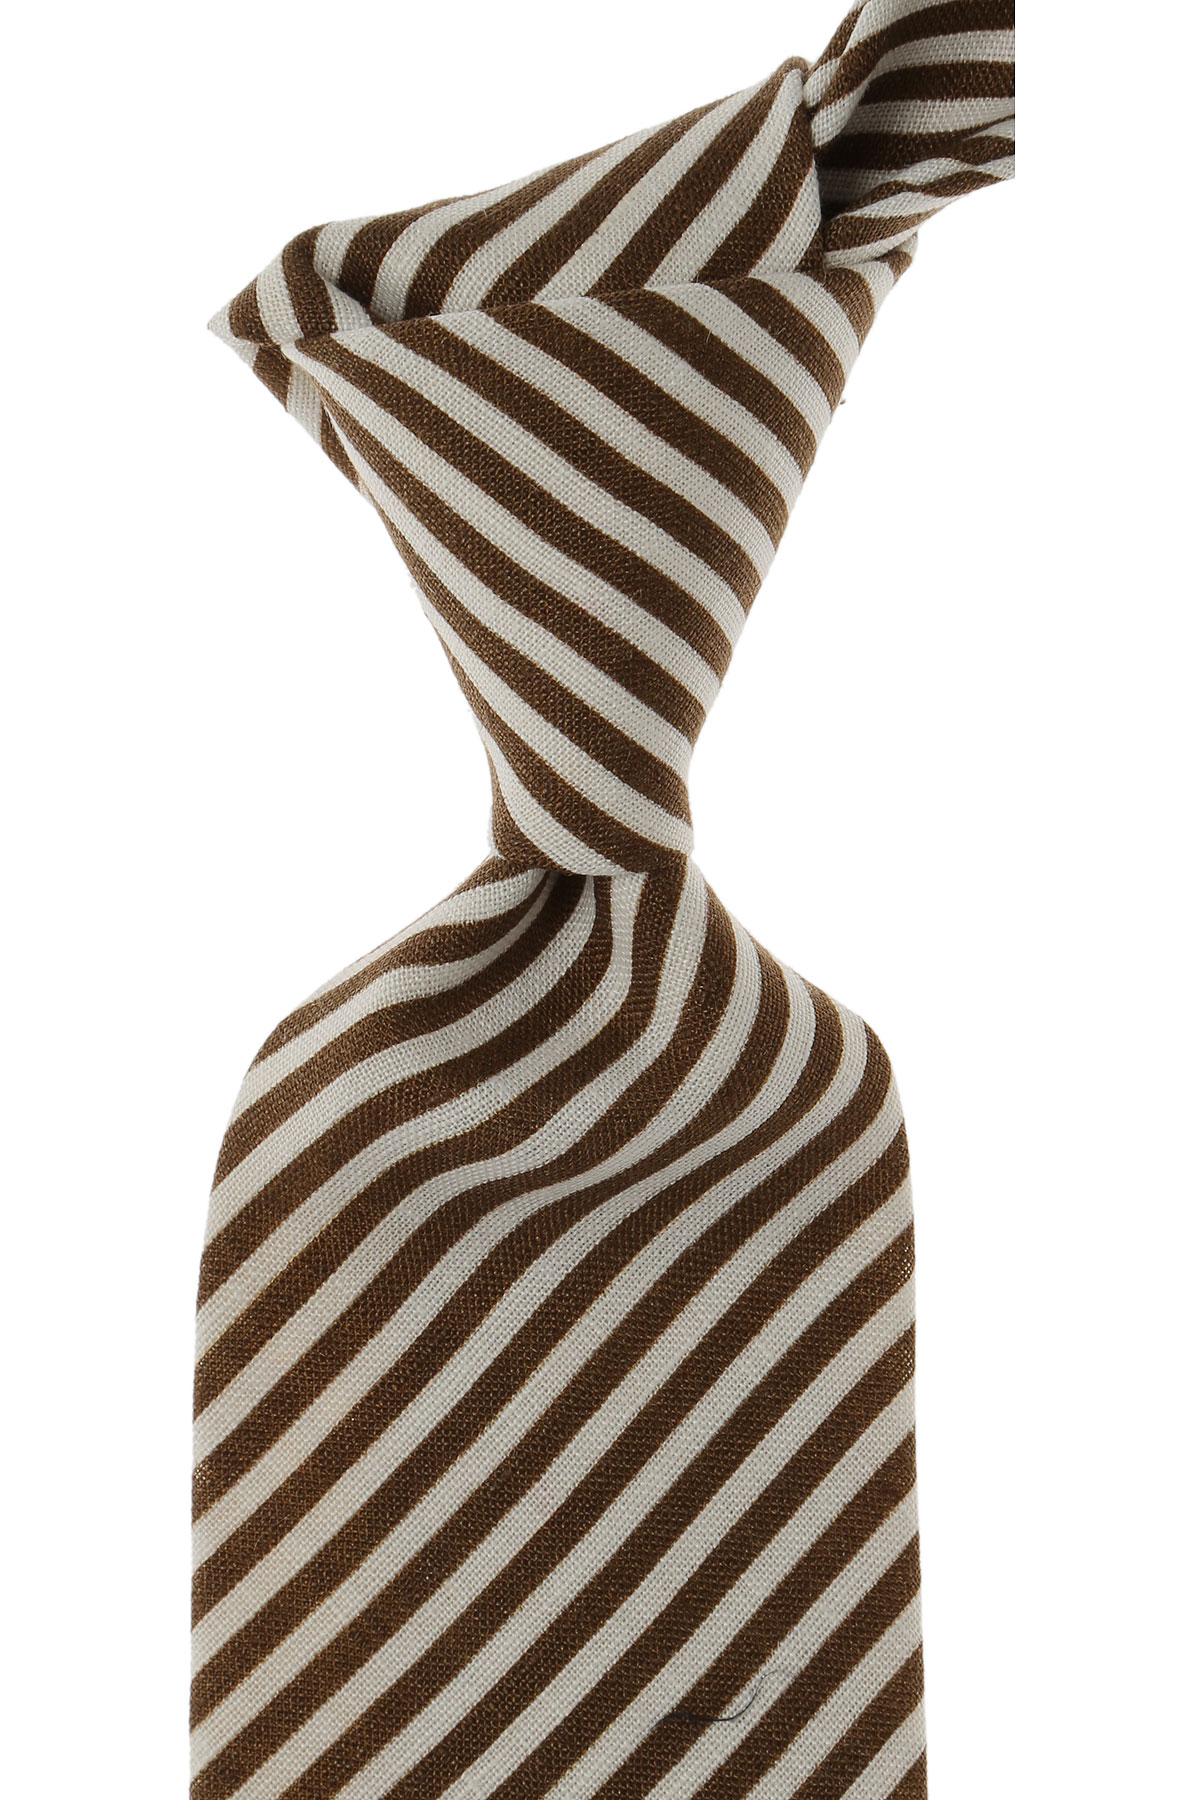 Image of Isaia Ties On Sale, Brown, Cotton, 2017